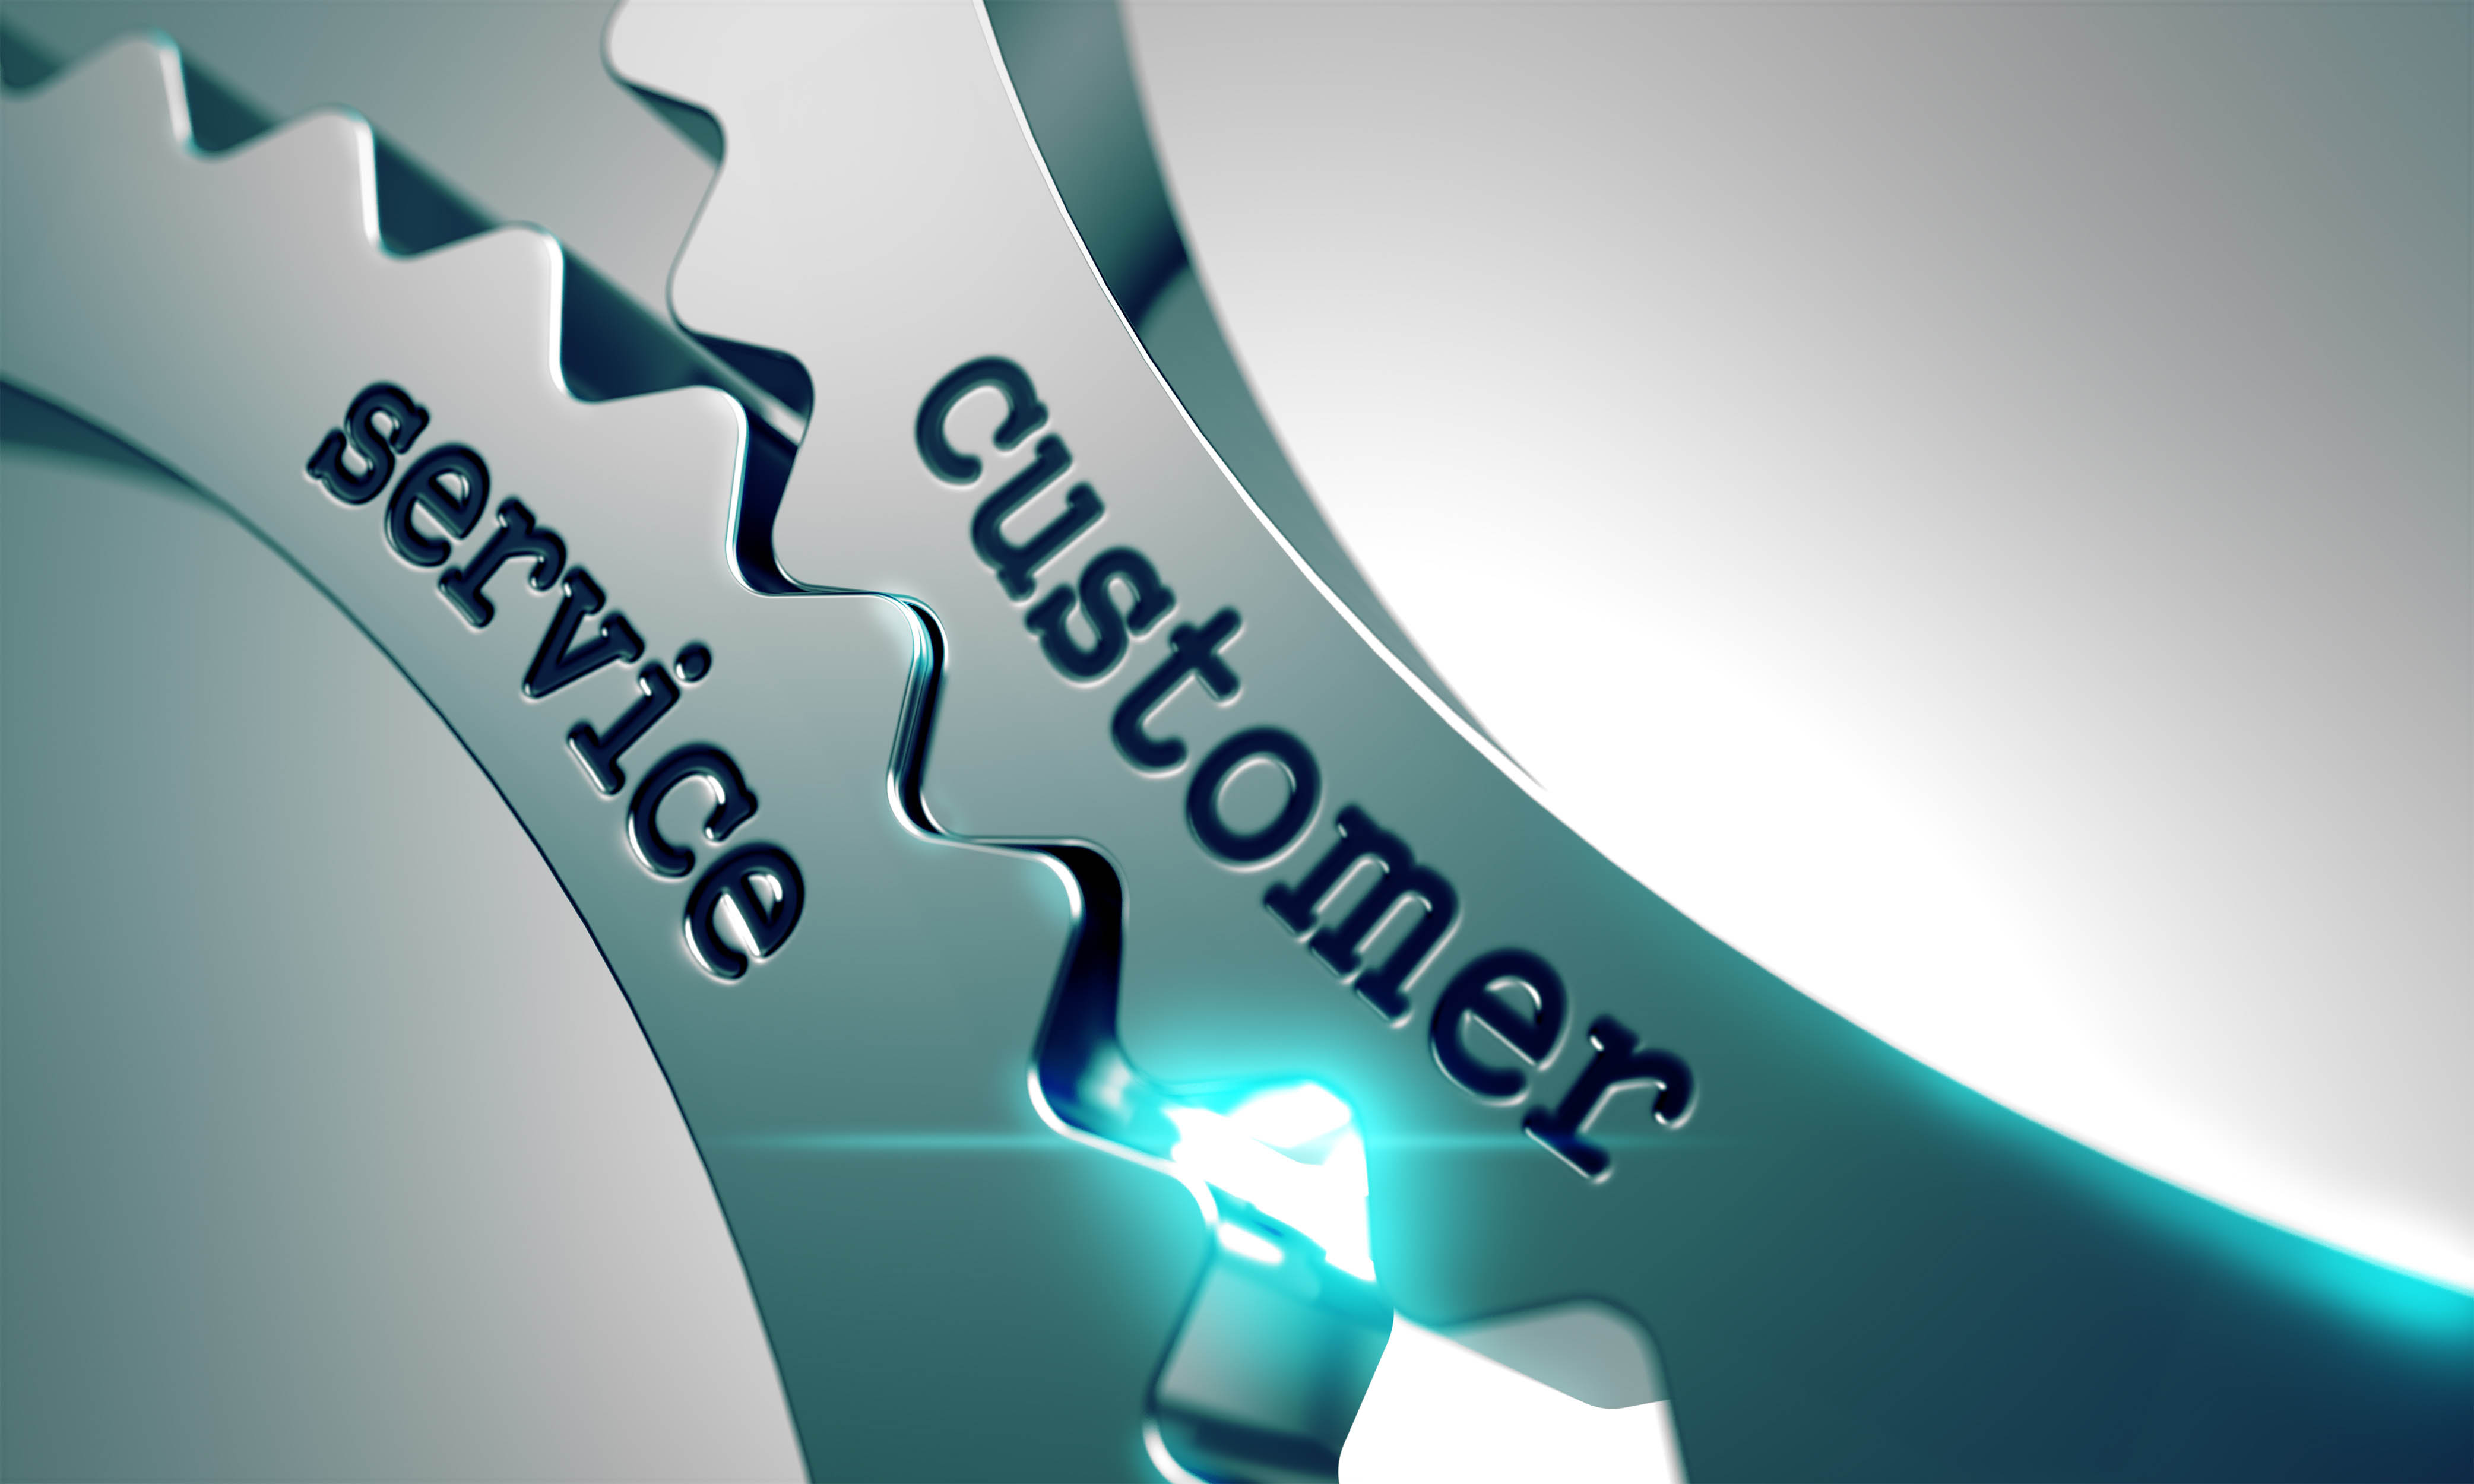 Customer Service: It's not about NEVER failing